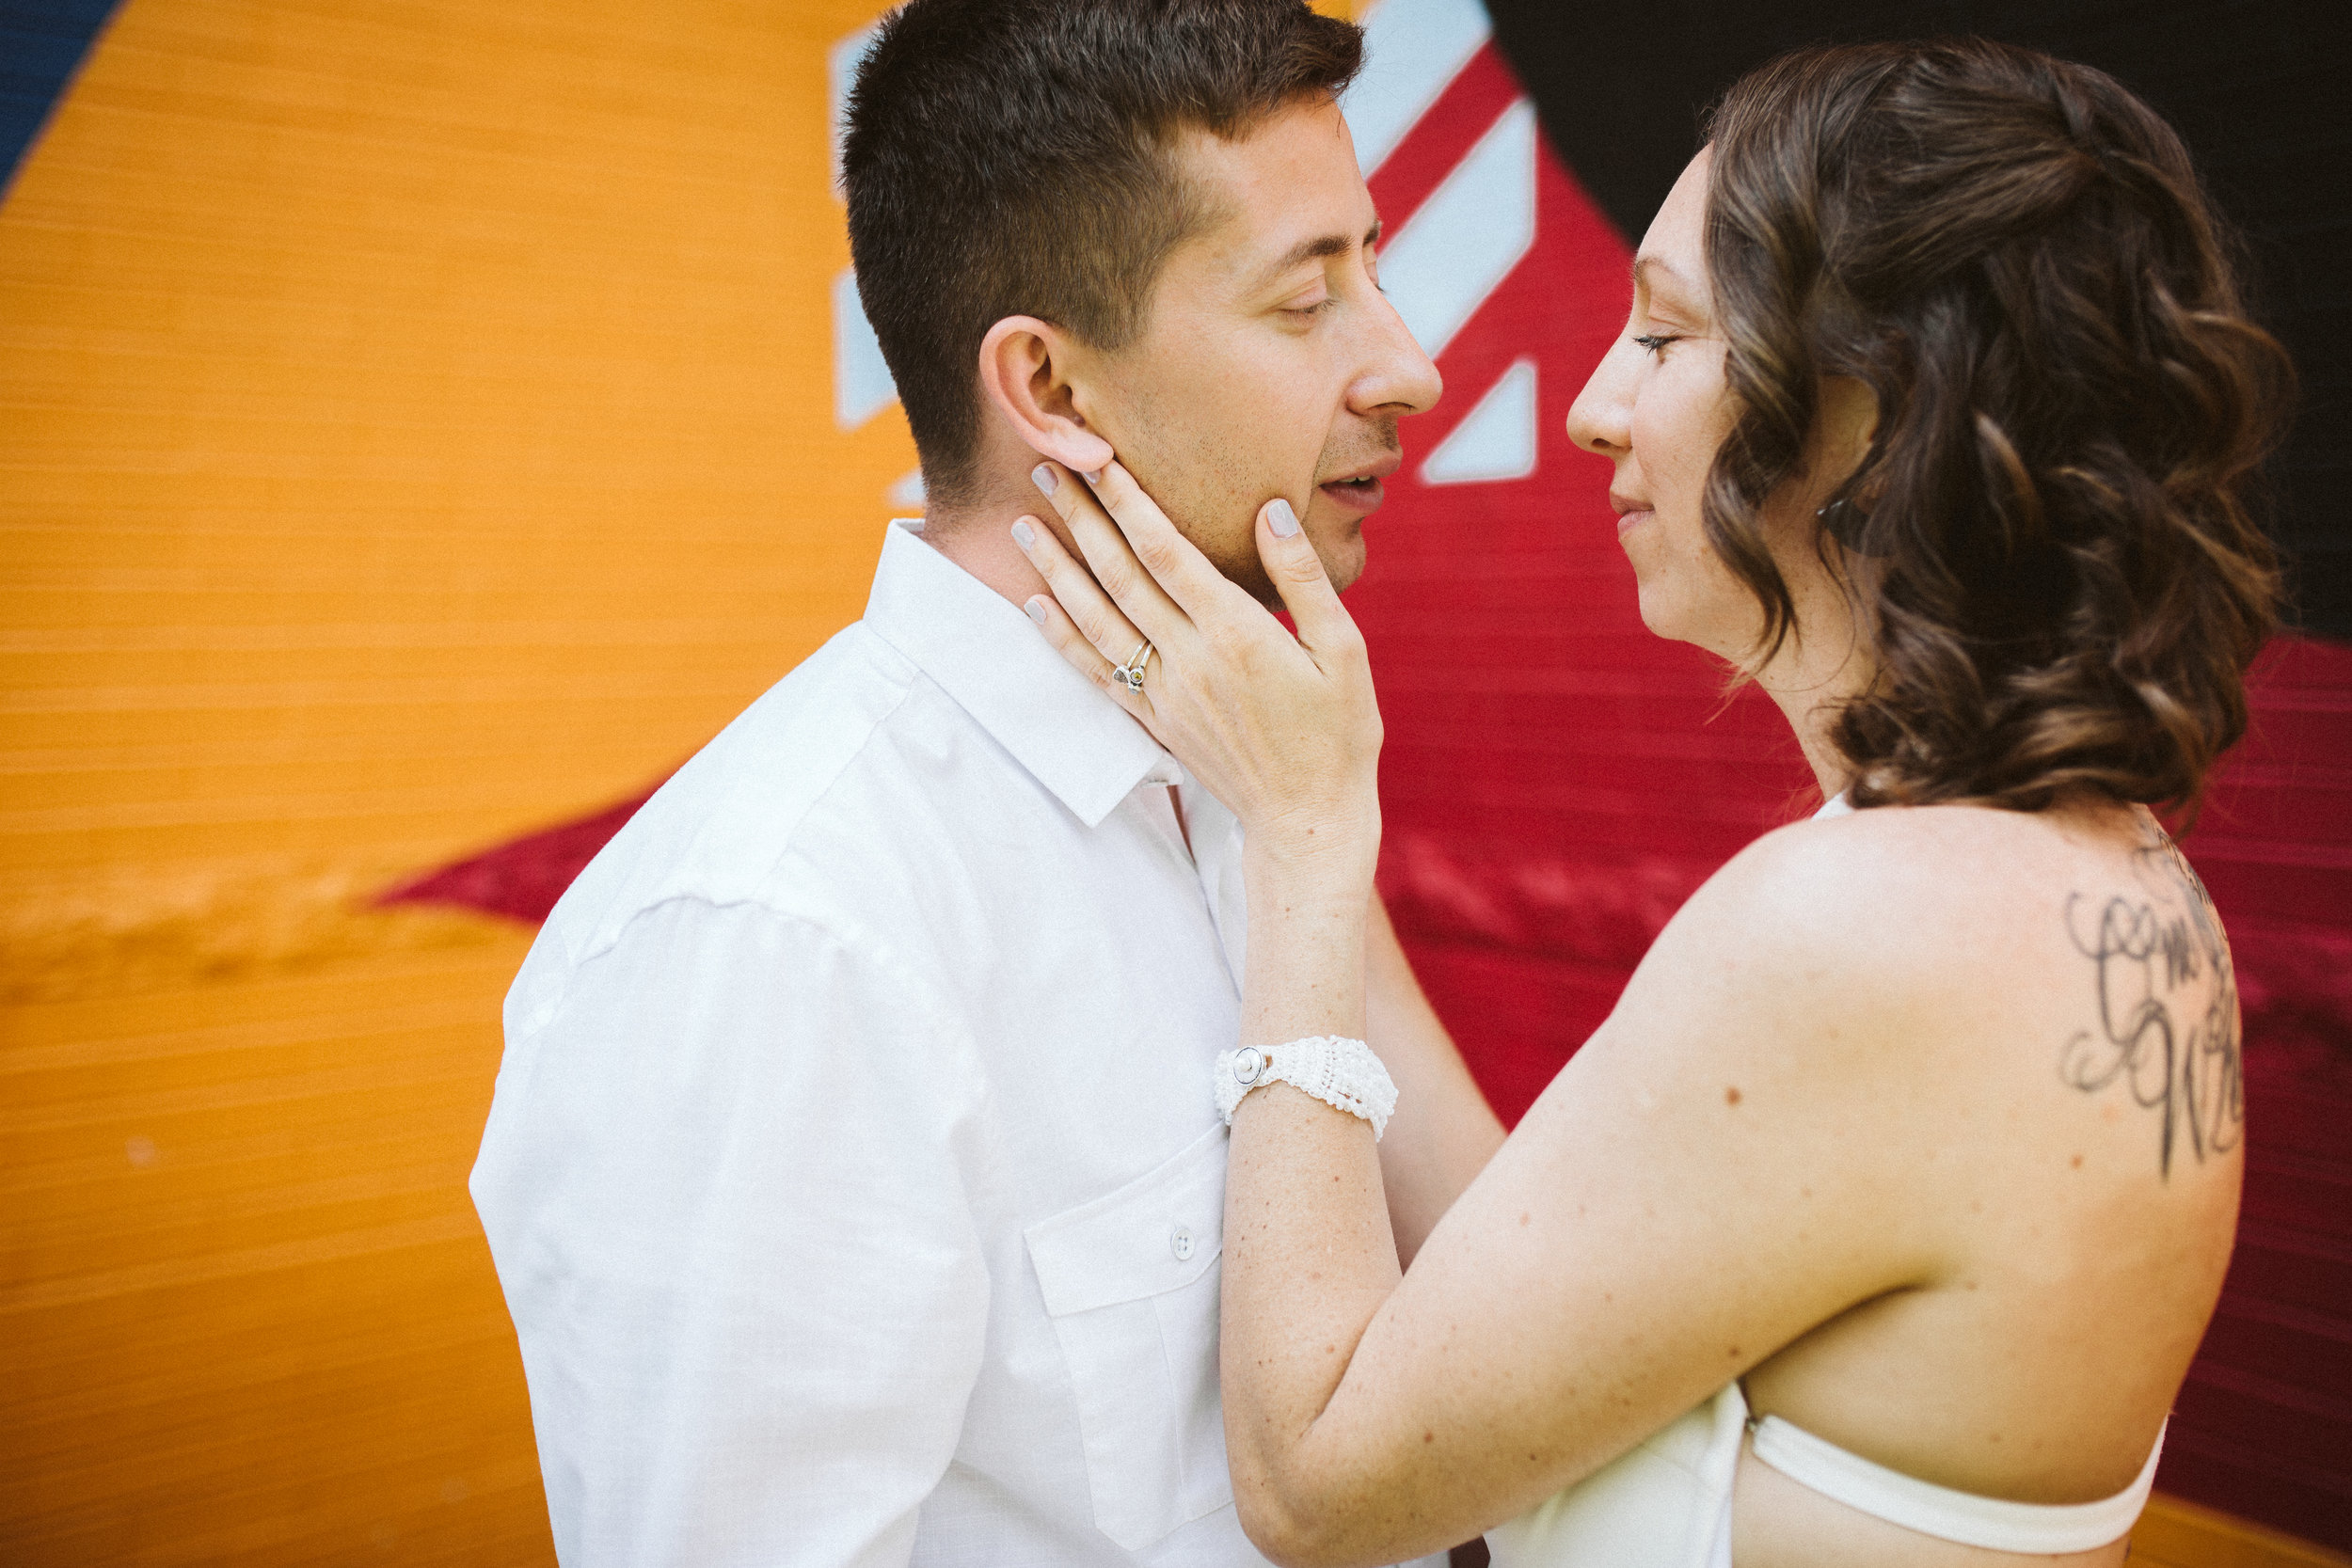 susanandkennethdorswitt.virginiaMOCA.virginiabeach.virginia.rebeccaburtphotography.art.wedding-144.jpg